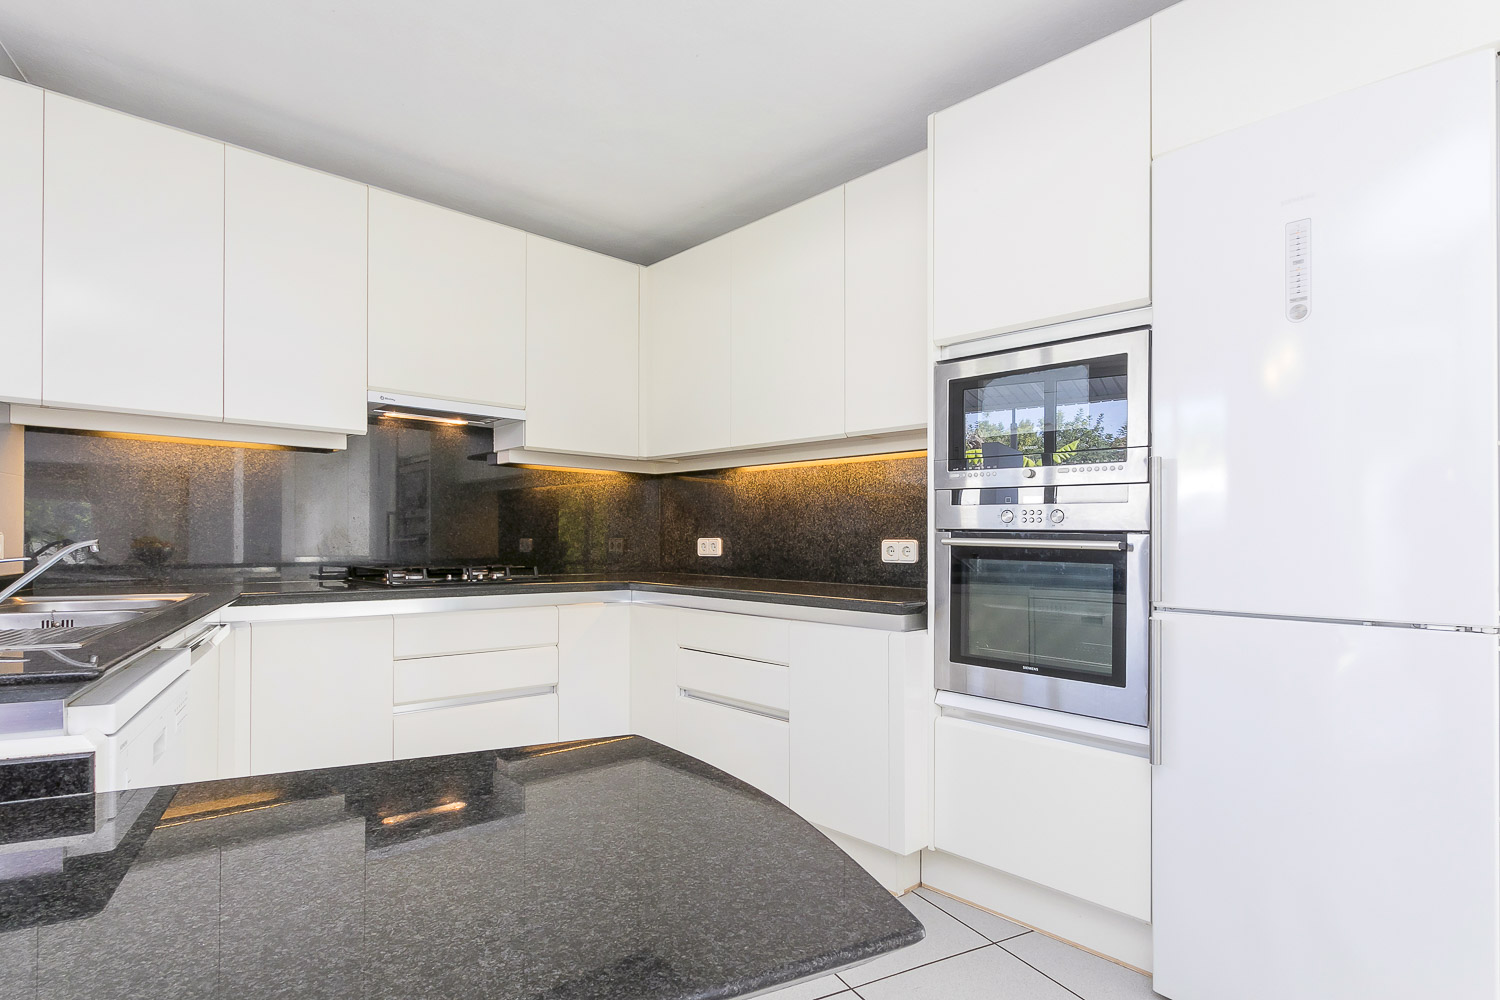 Modern fully equipped kitchen with central island in Ibiza rental house